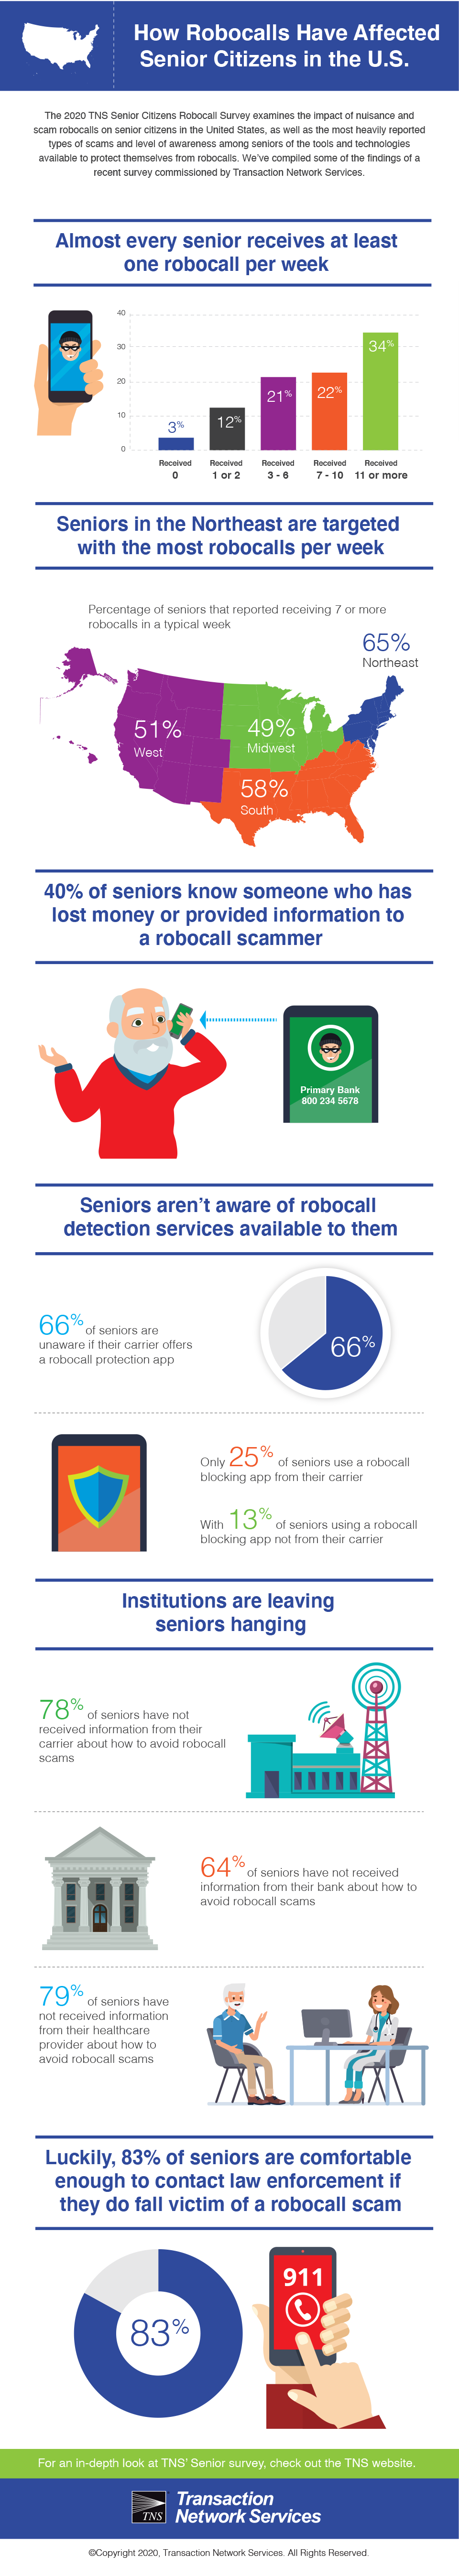 How Robocalls Have Affected Senior Citizens in the U.S.